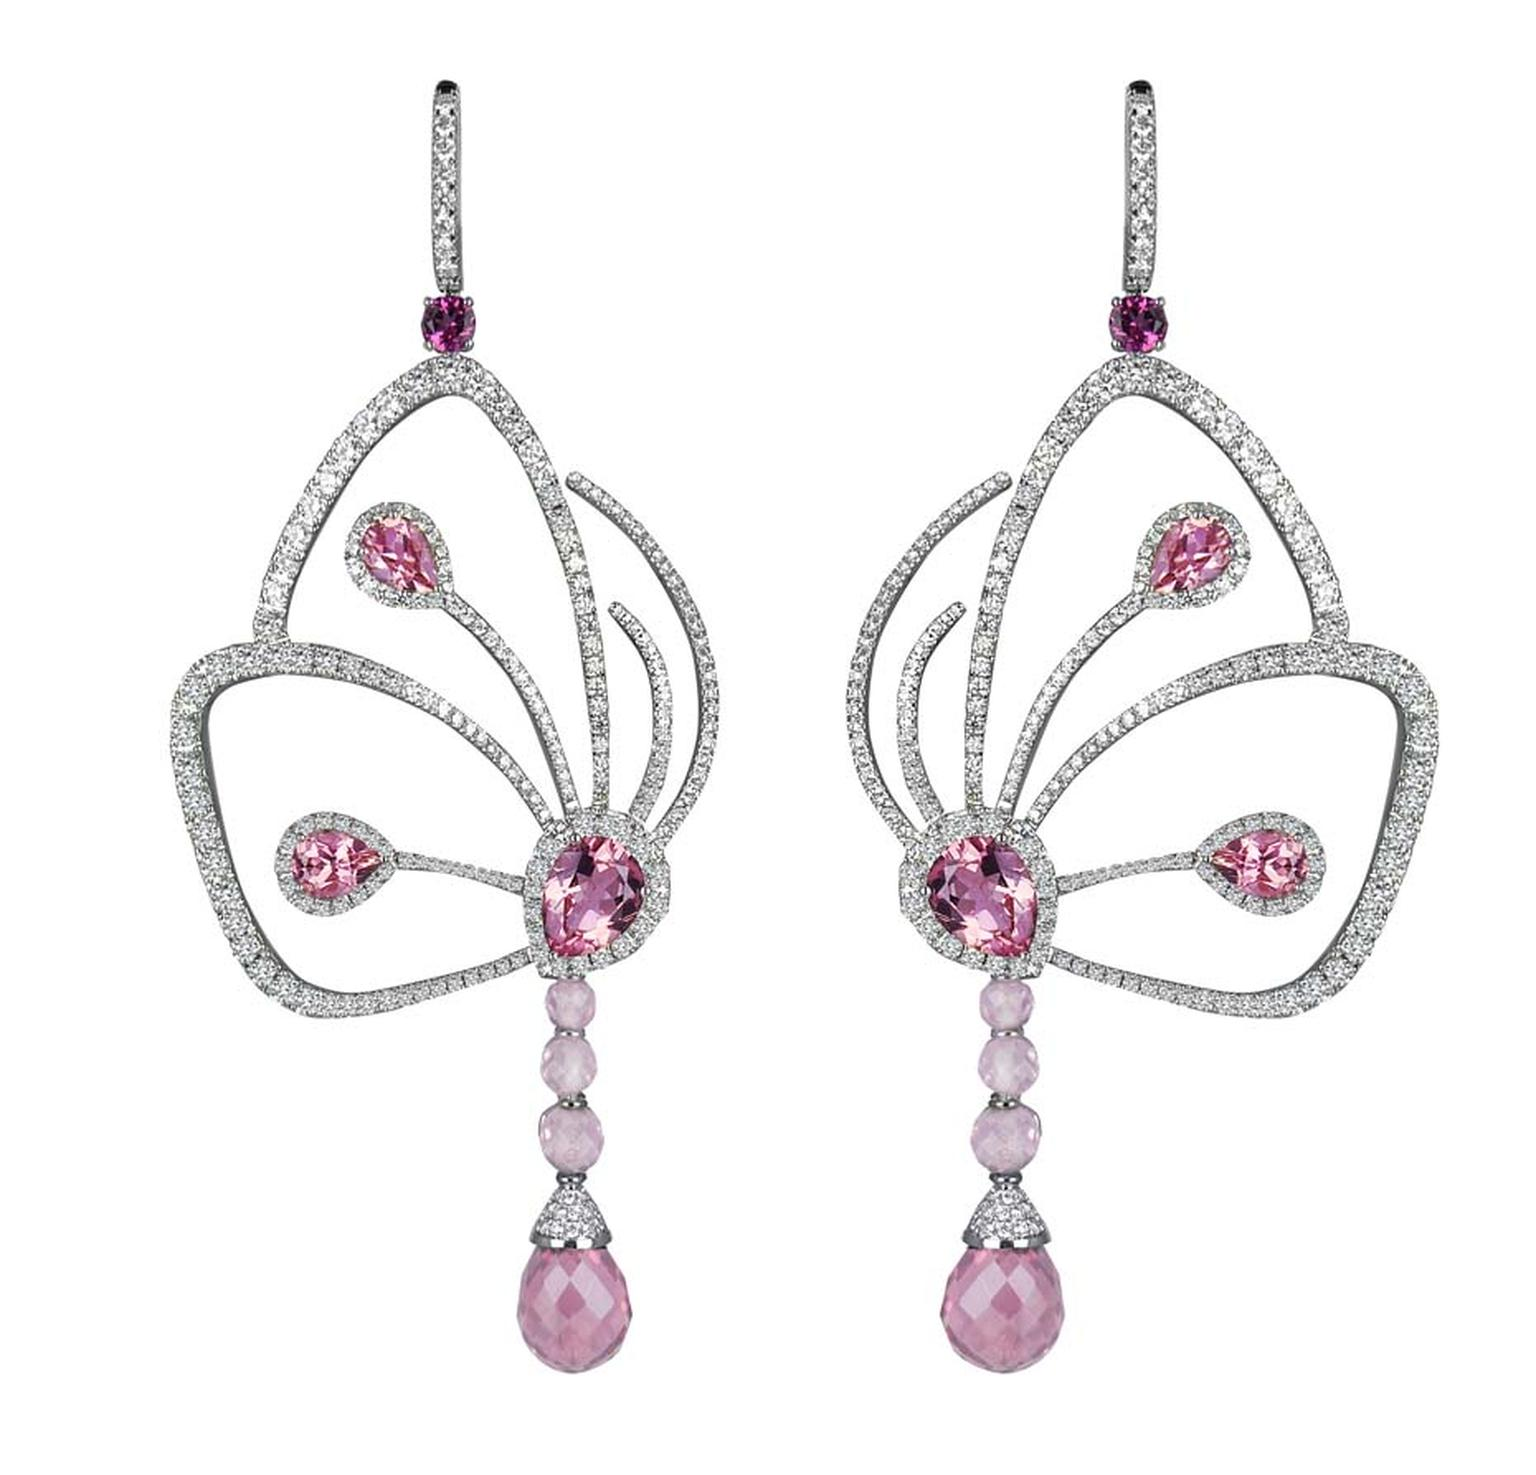 Jacob & Co. Butterfly earrings from the Papillon collection in white gold, set with pink tourmalines and diamonds.